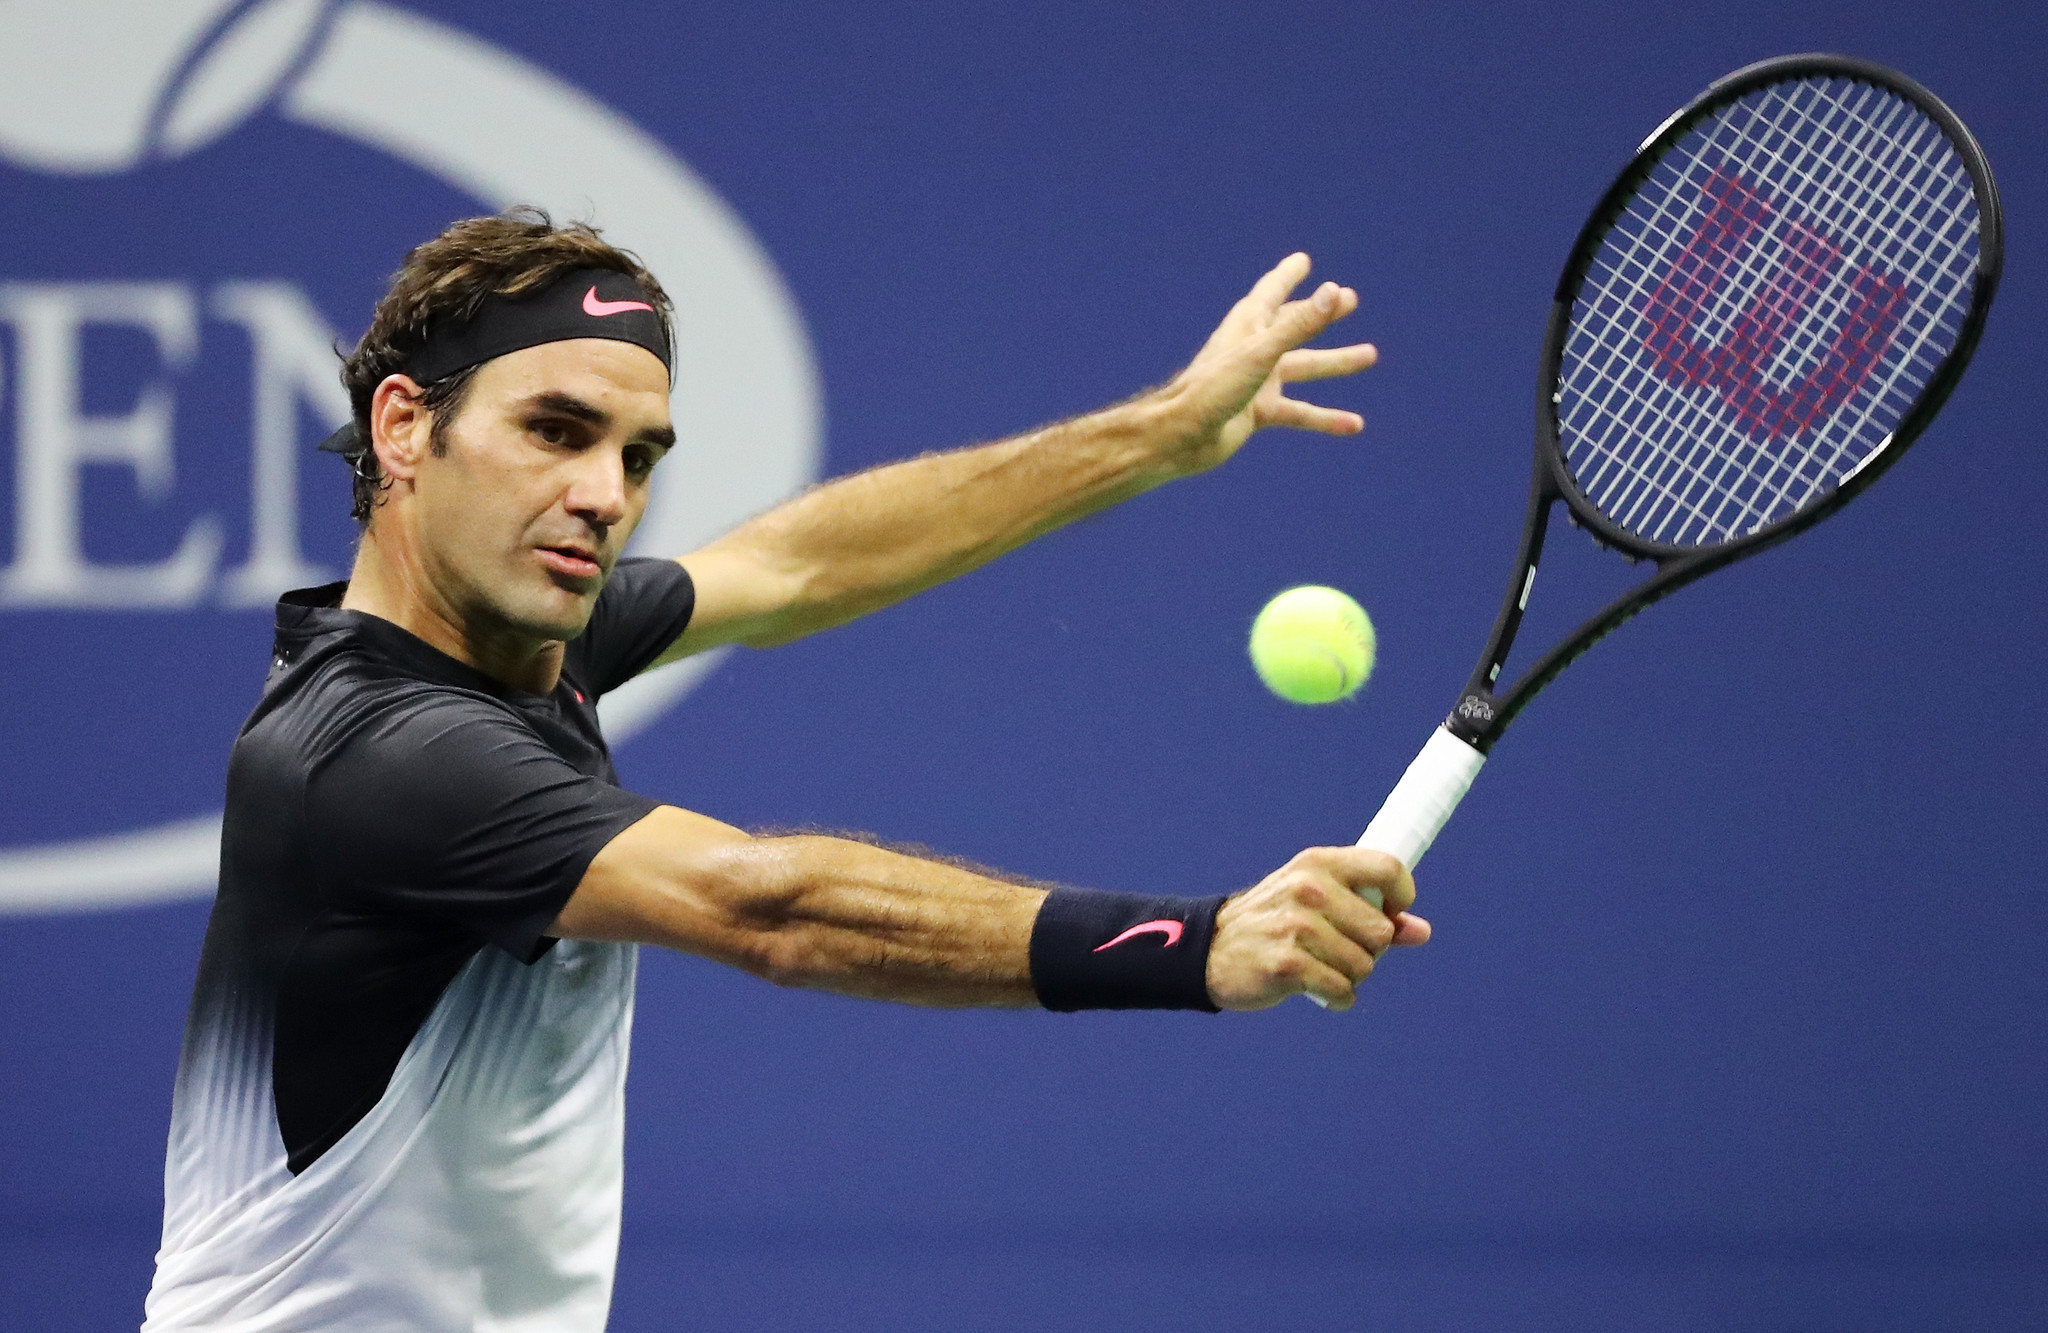 Roger Federer looks back at best in straight-sets win over Feliciano Lopez at US Open ...